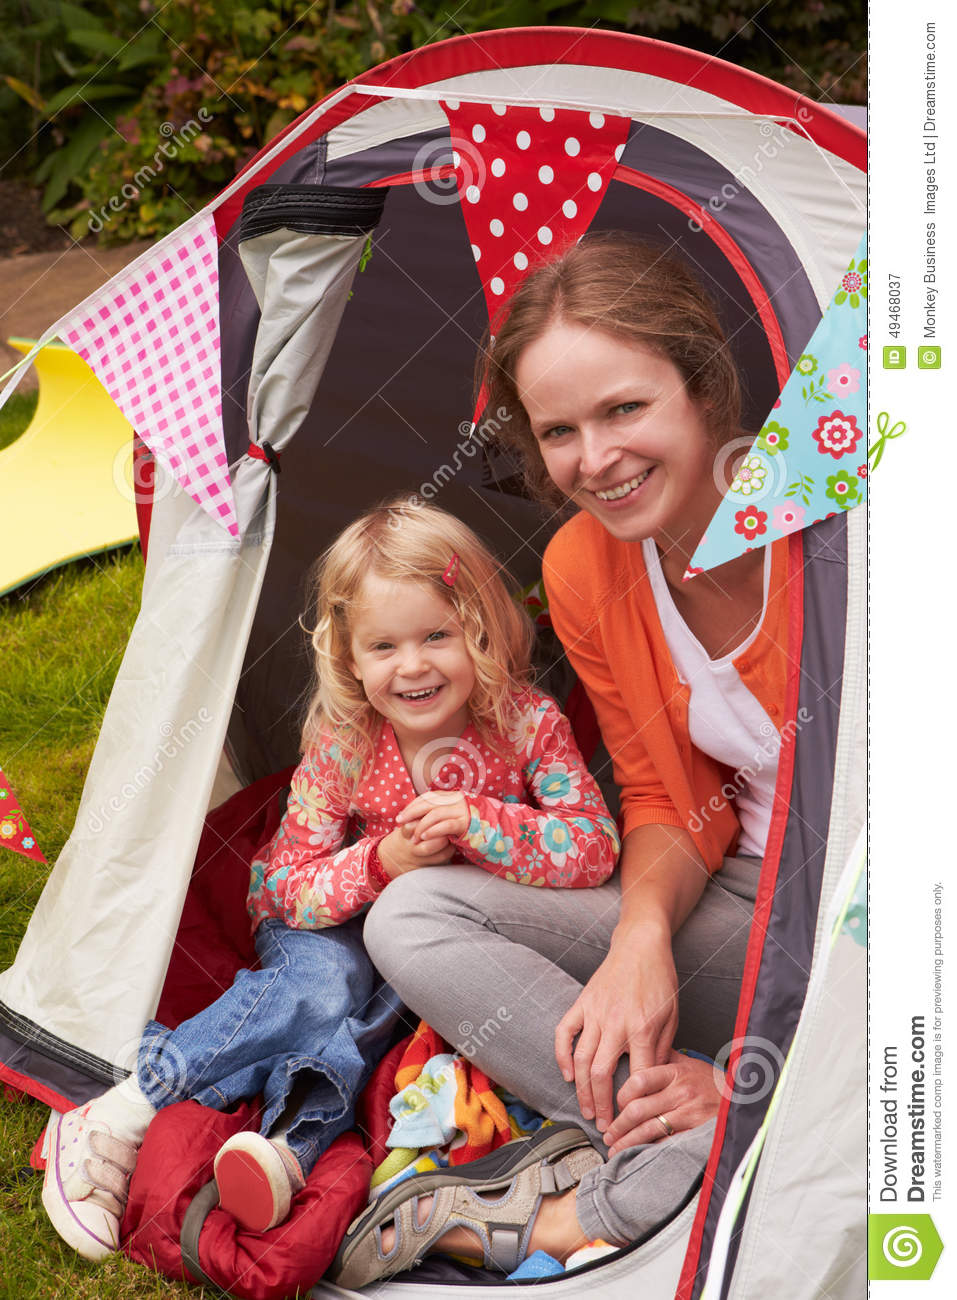 Mather And Daughter Enjoying Camping ferie på campingplats